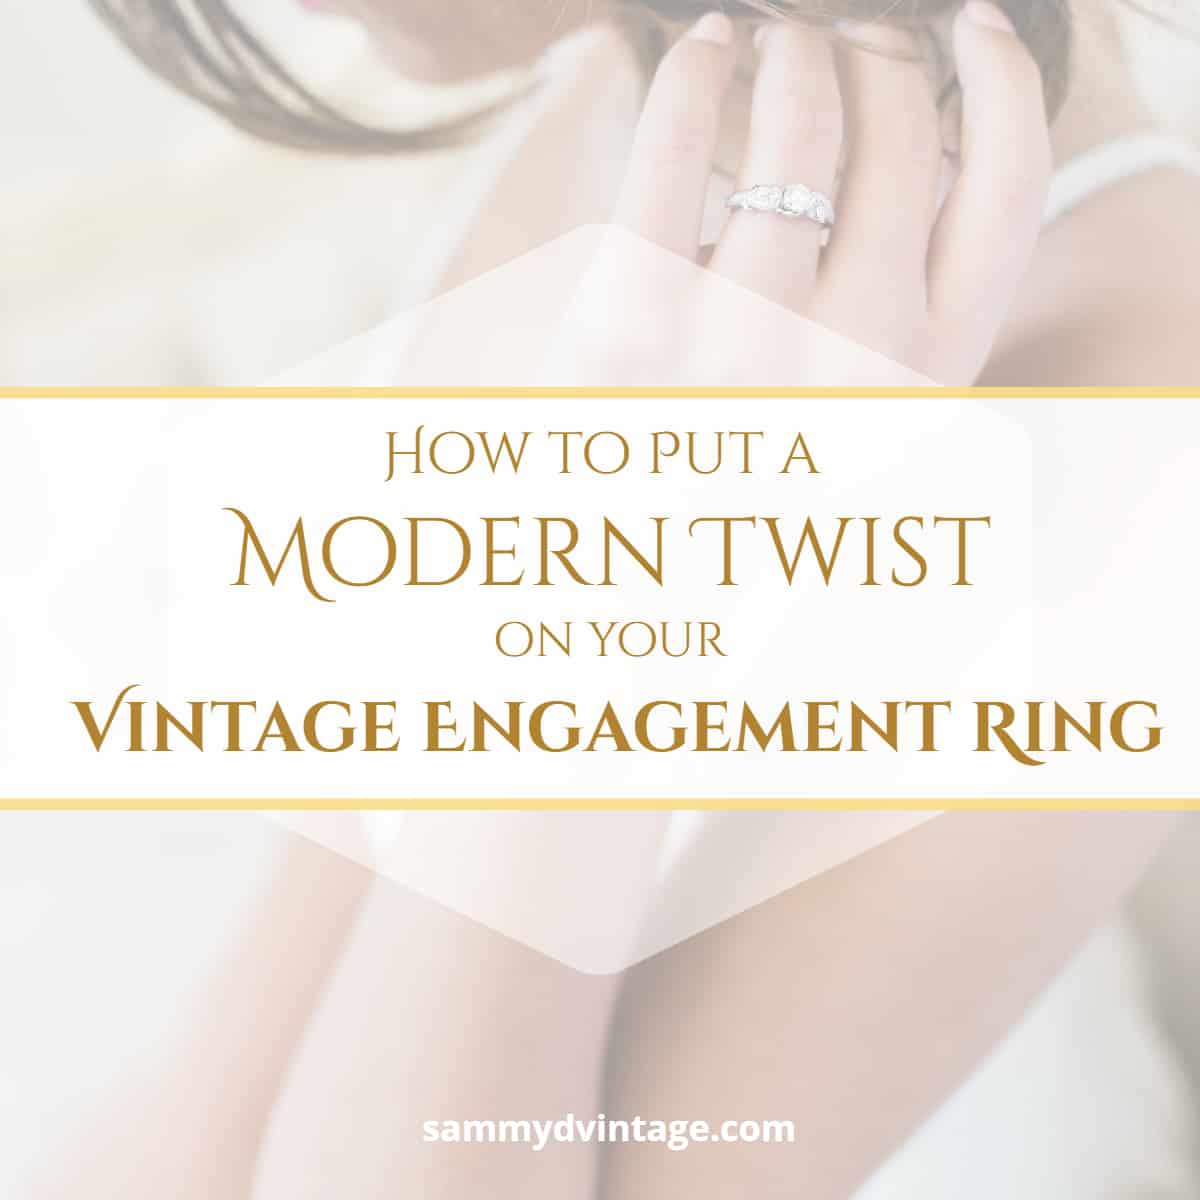 How to Put a Modern Twist on your Vintage Engagement Ring